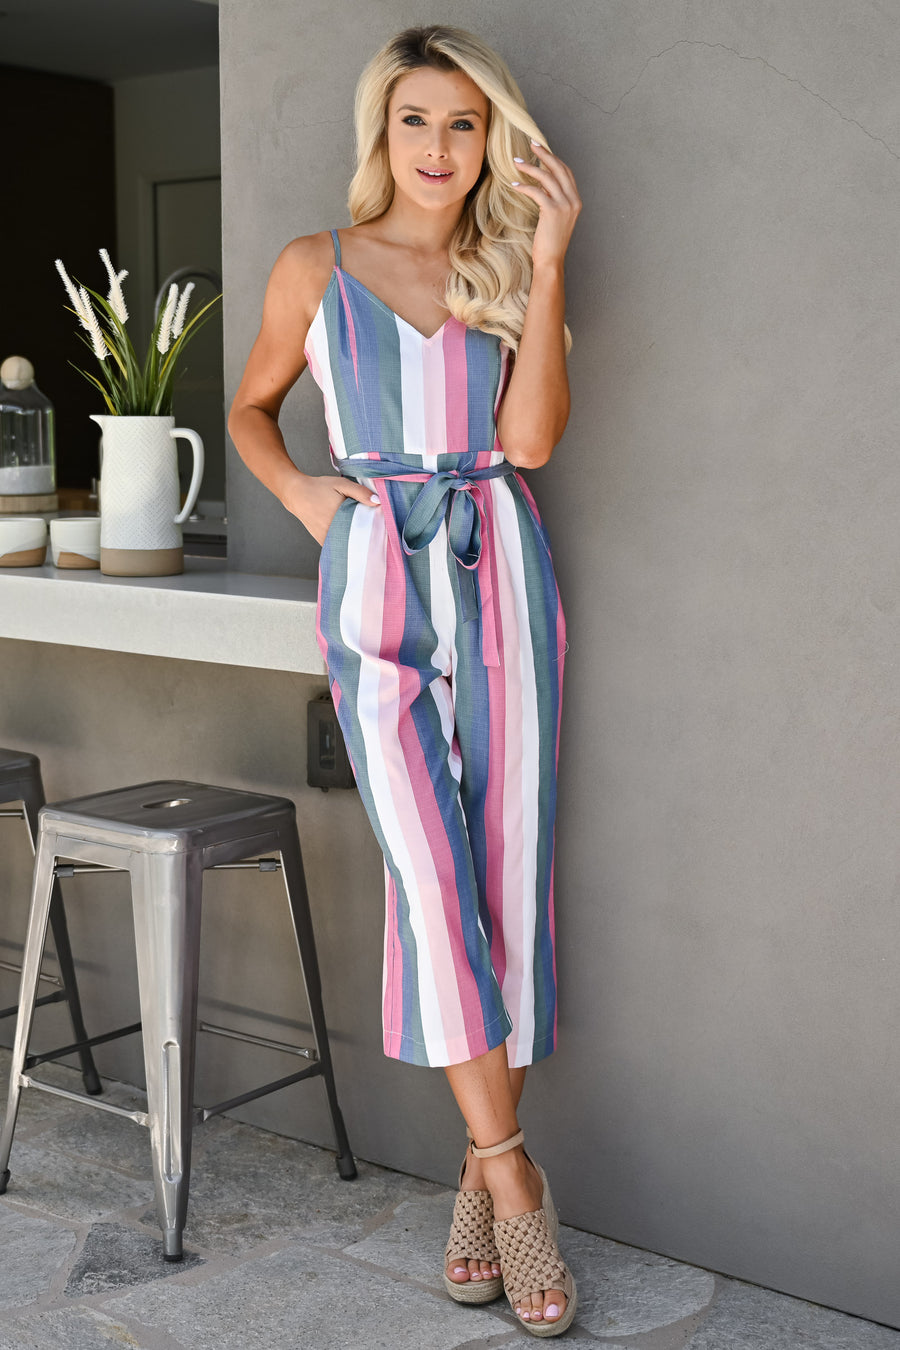 Jump Right In Striped Jumpsuit - Multi womens trendy tie waist pastel striped jumper closet candy front